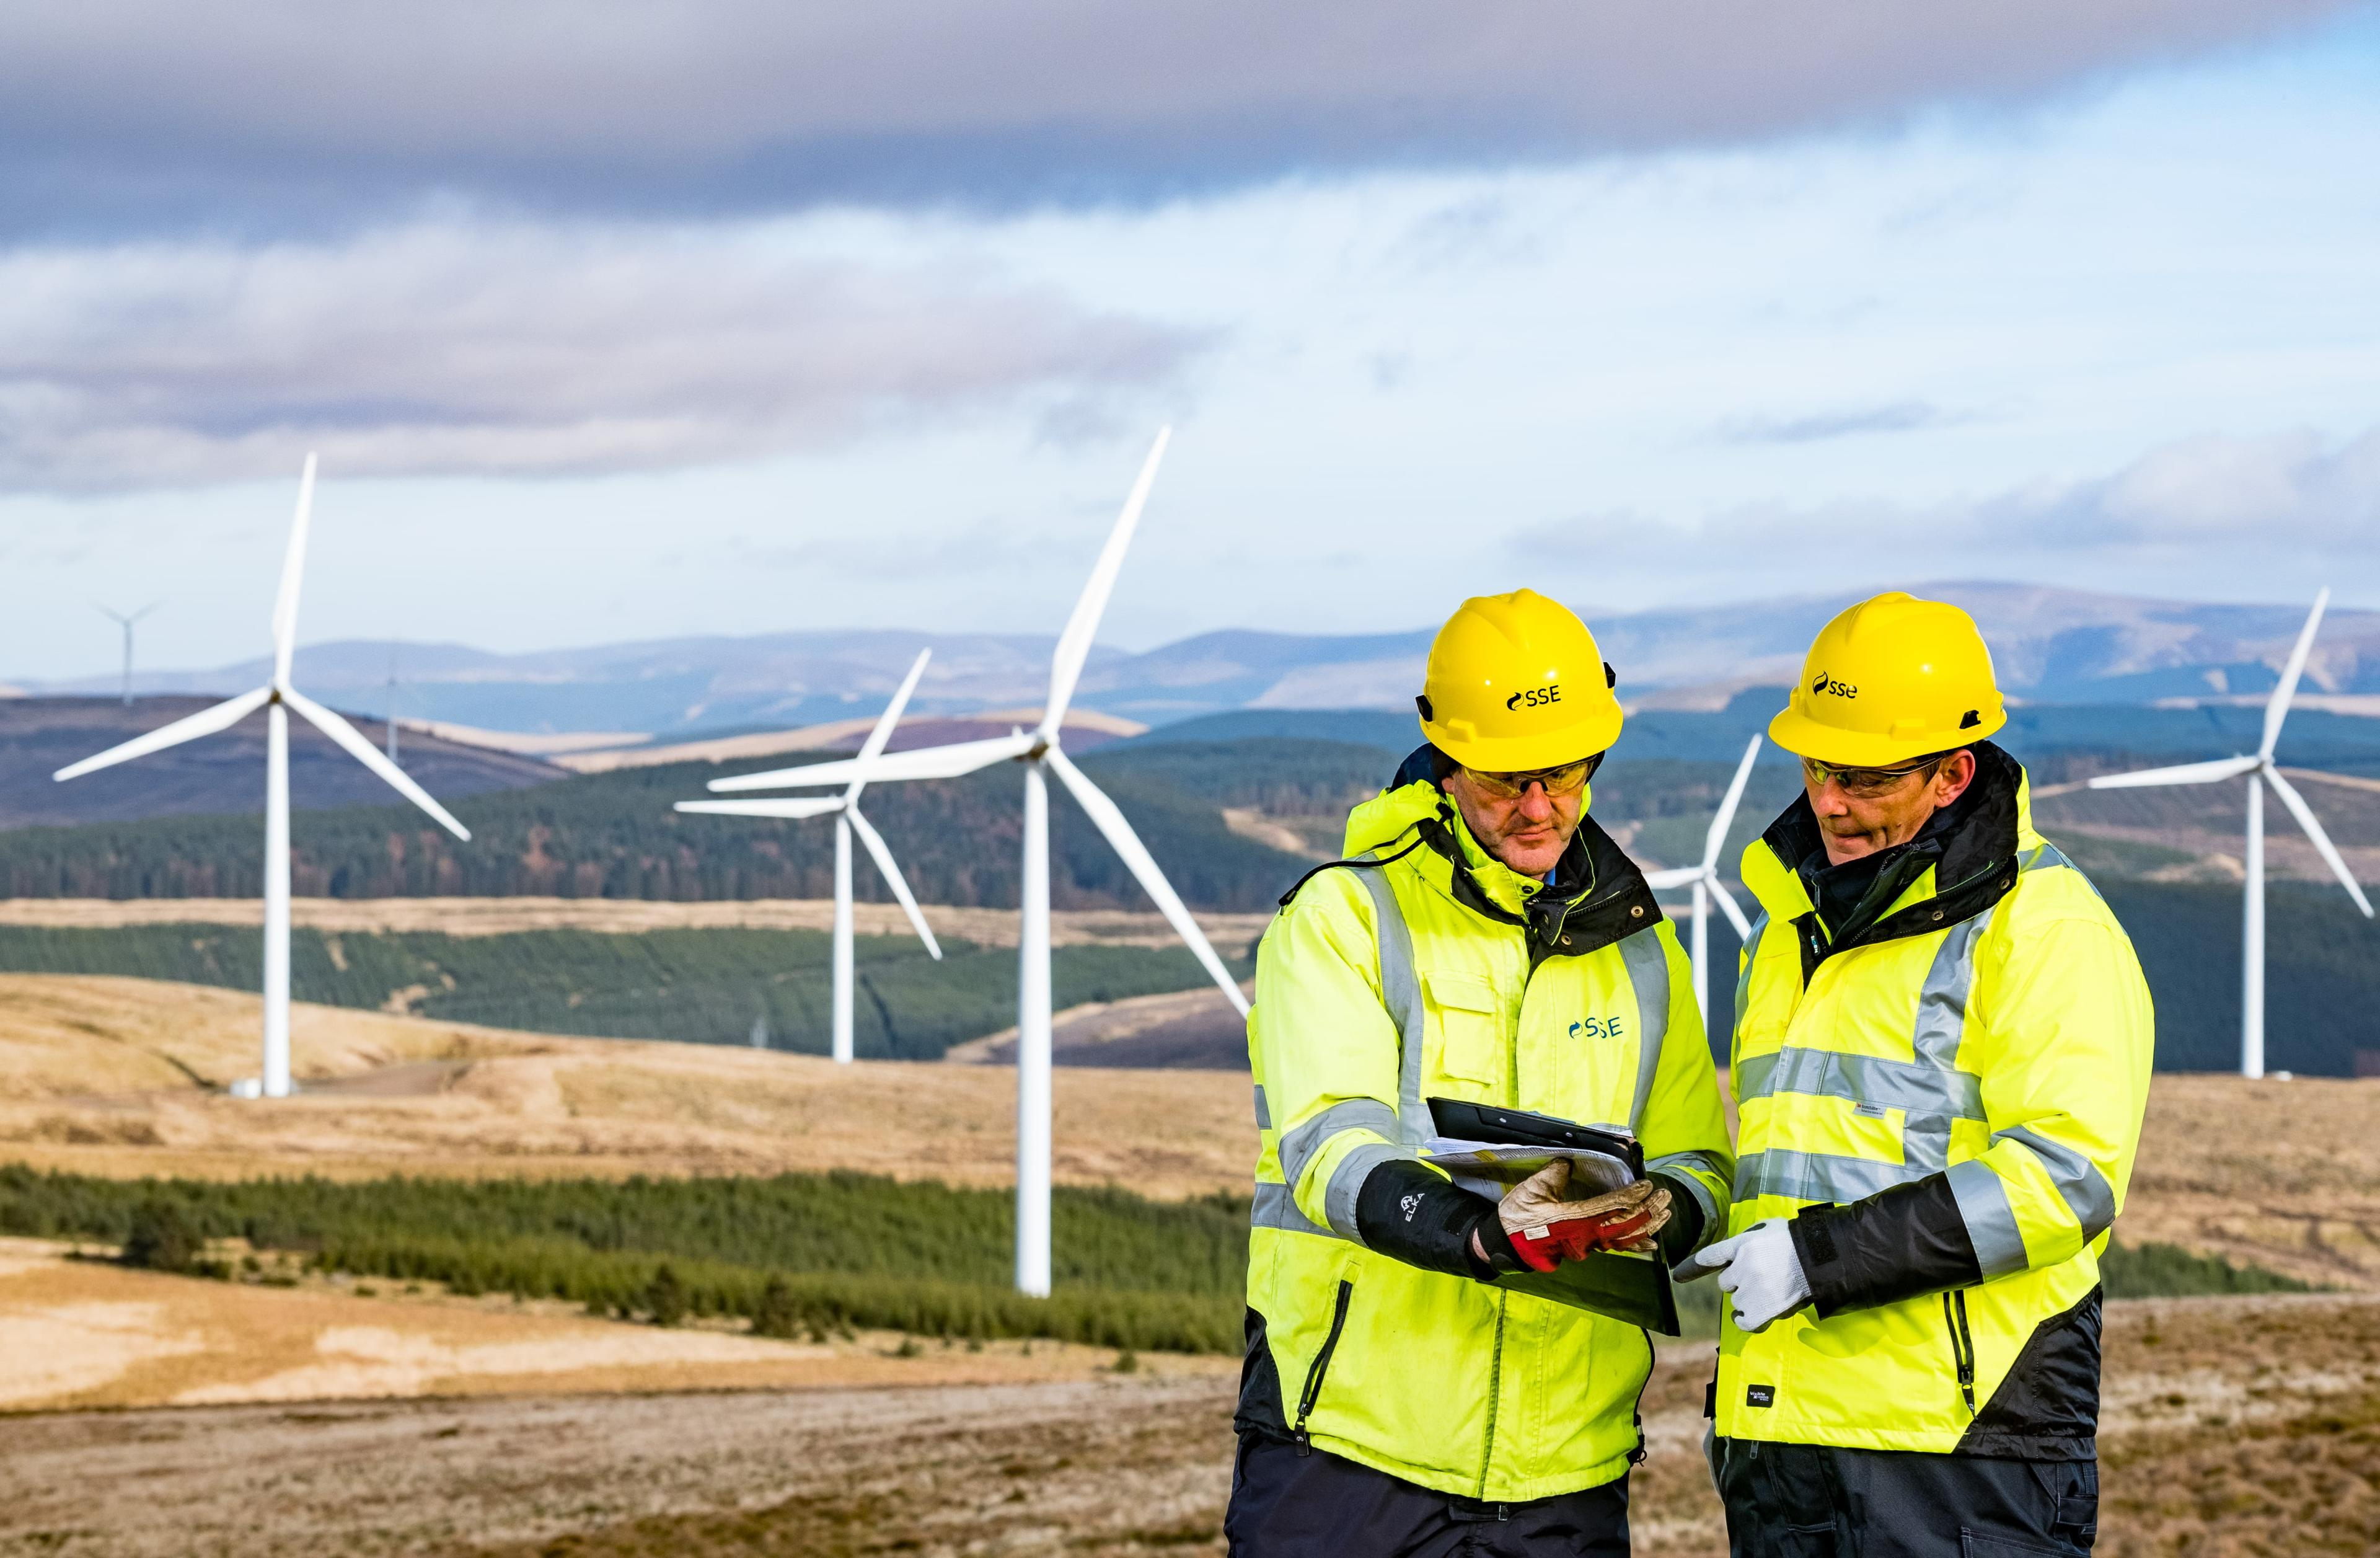 SSE_Health_and_Safety_Rebrand_Day7_Clyde_Windfarm_43 (1).JPG